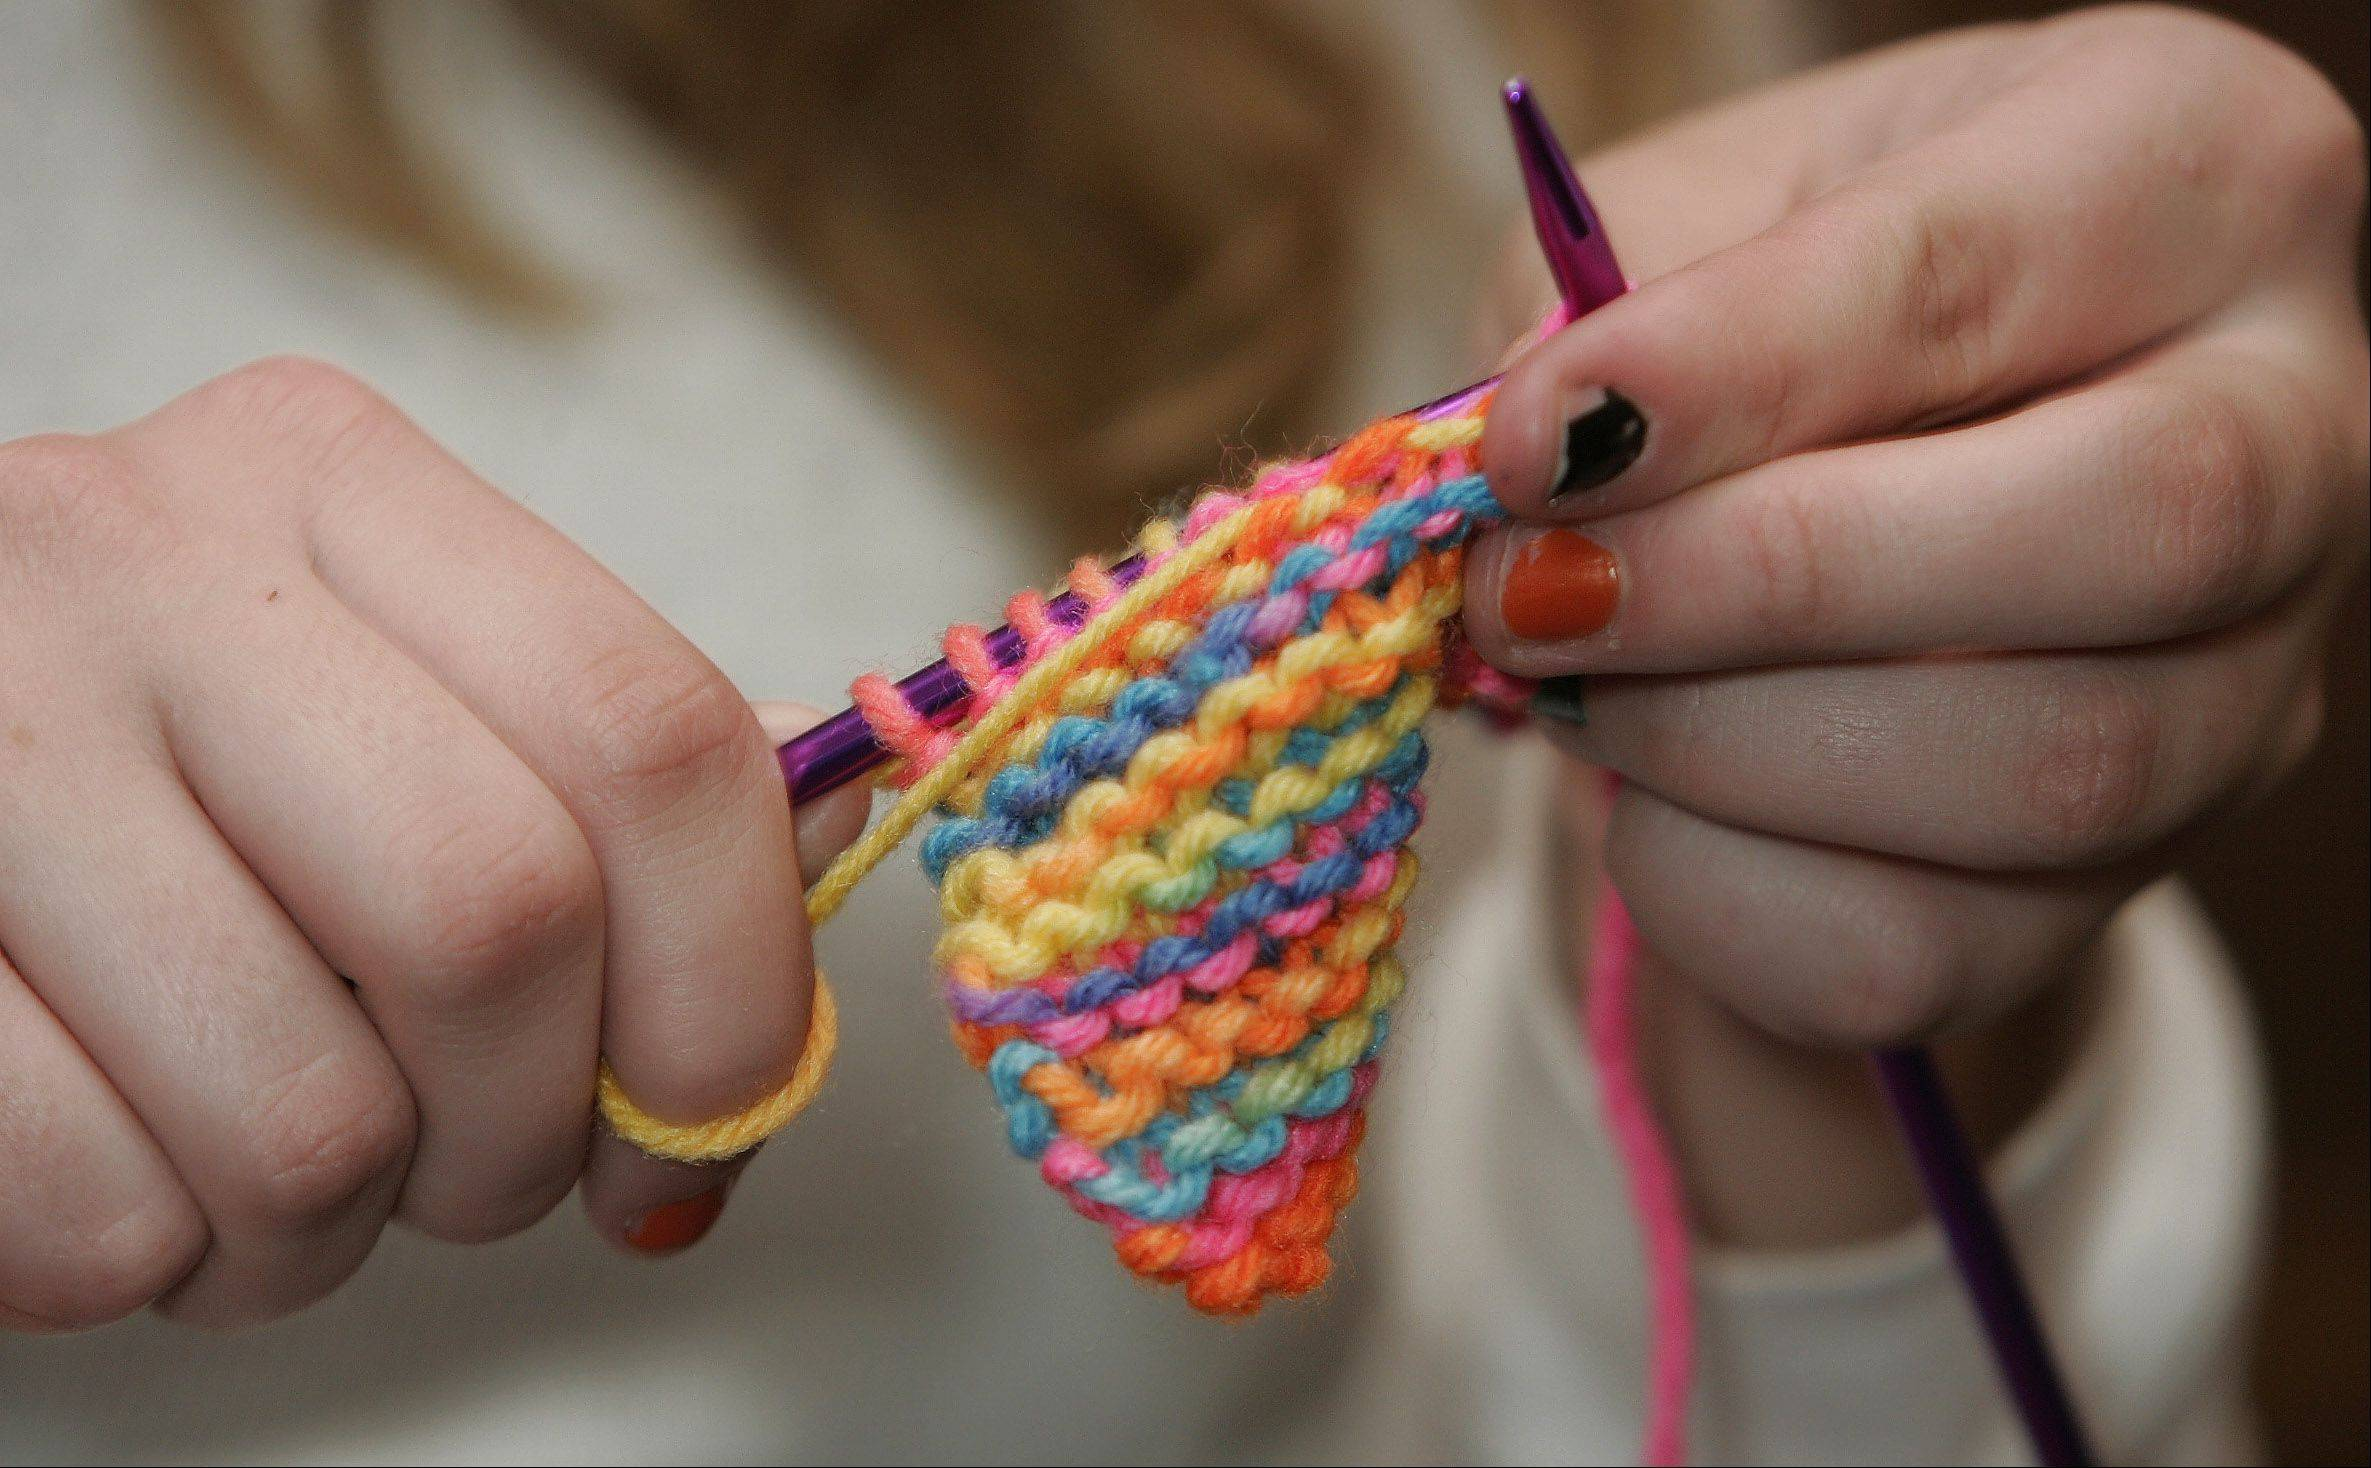 The Association for Individual Development is seeking volunteers to knit scarves to raise money for the organization.